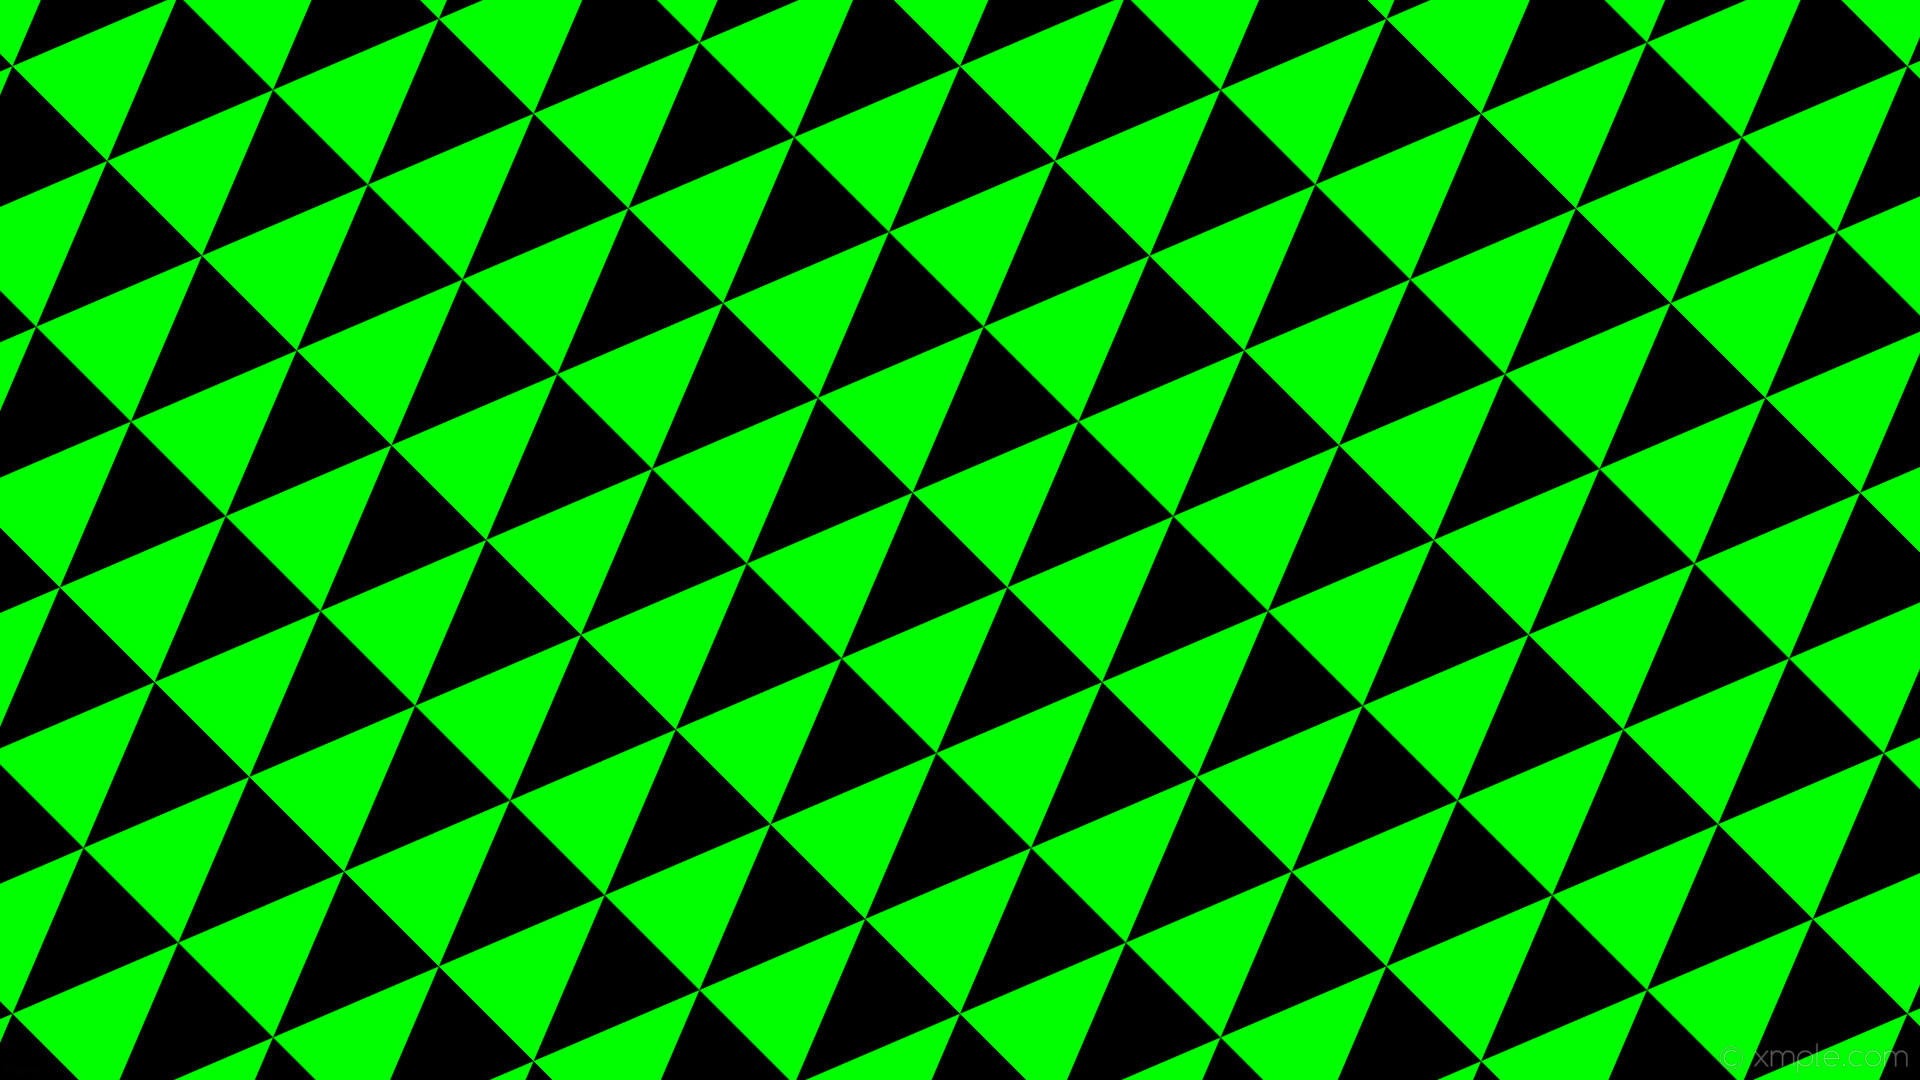 wallpaper green black triangle lime #00ff00 #000000 135° 134px 335px